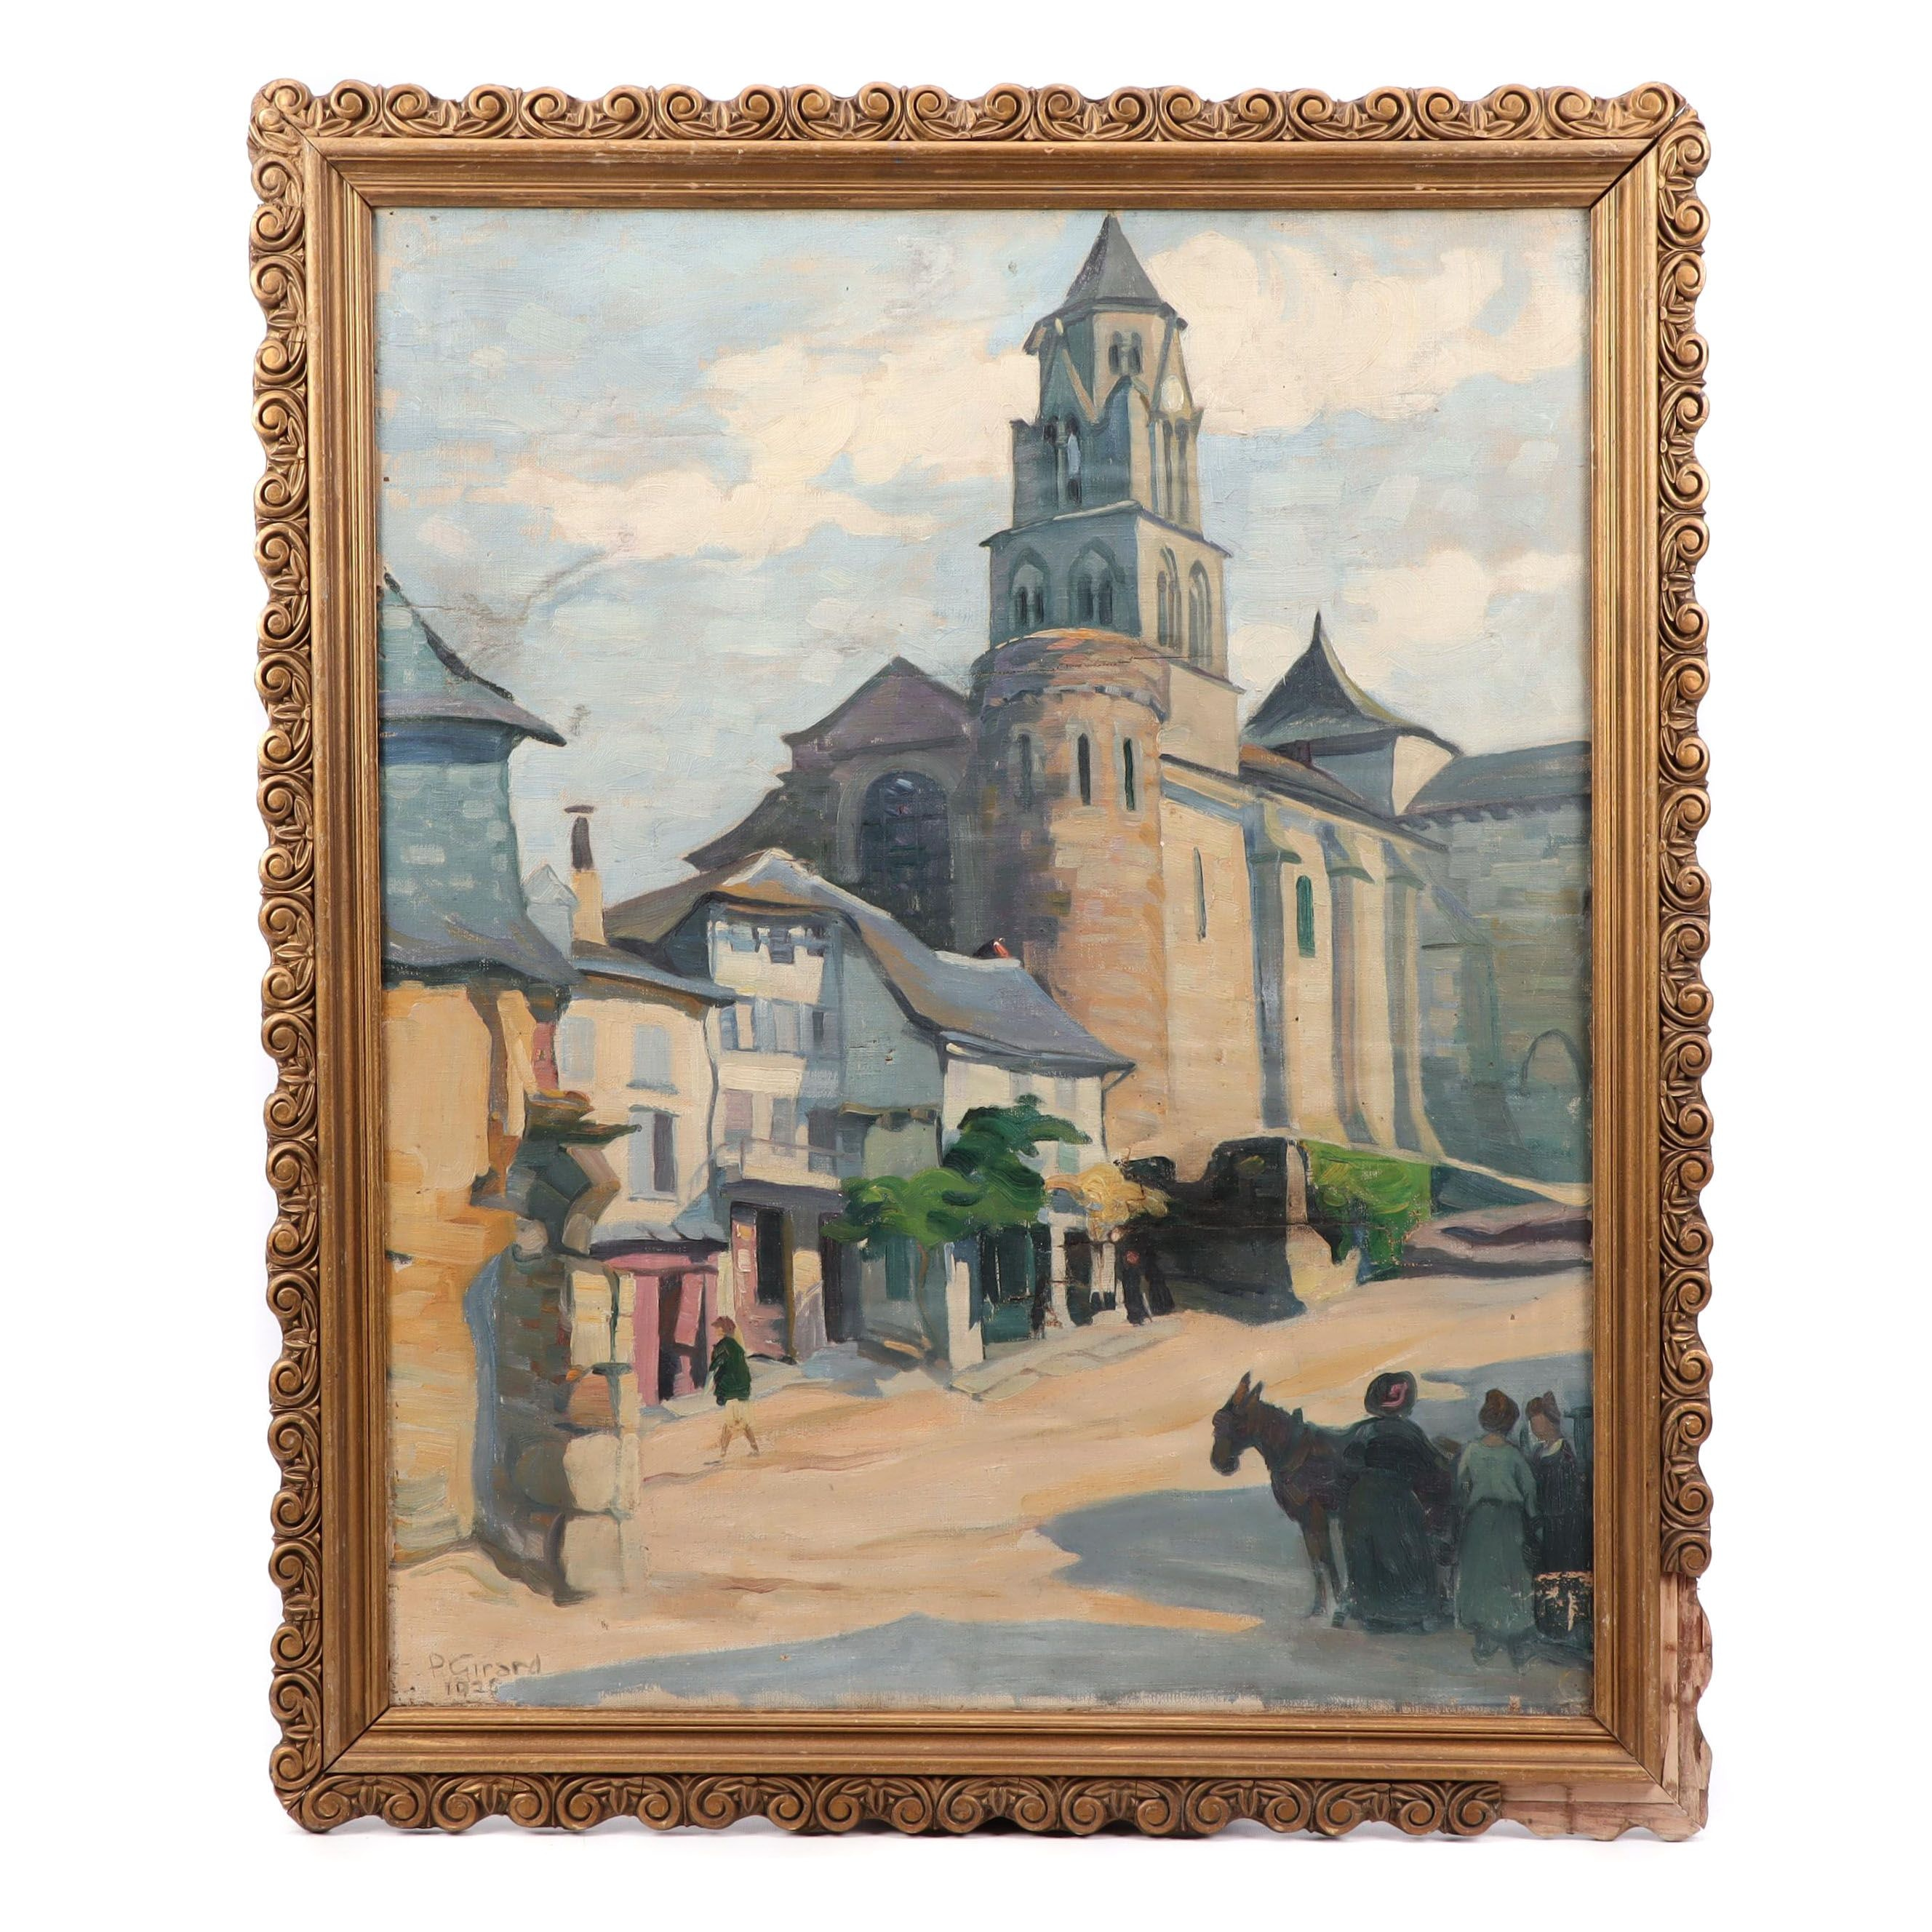 P. Girard 1925 Oil Painting of European Street Scene